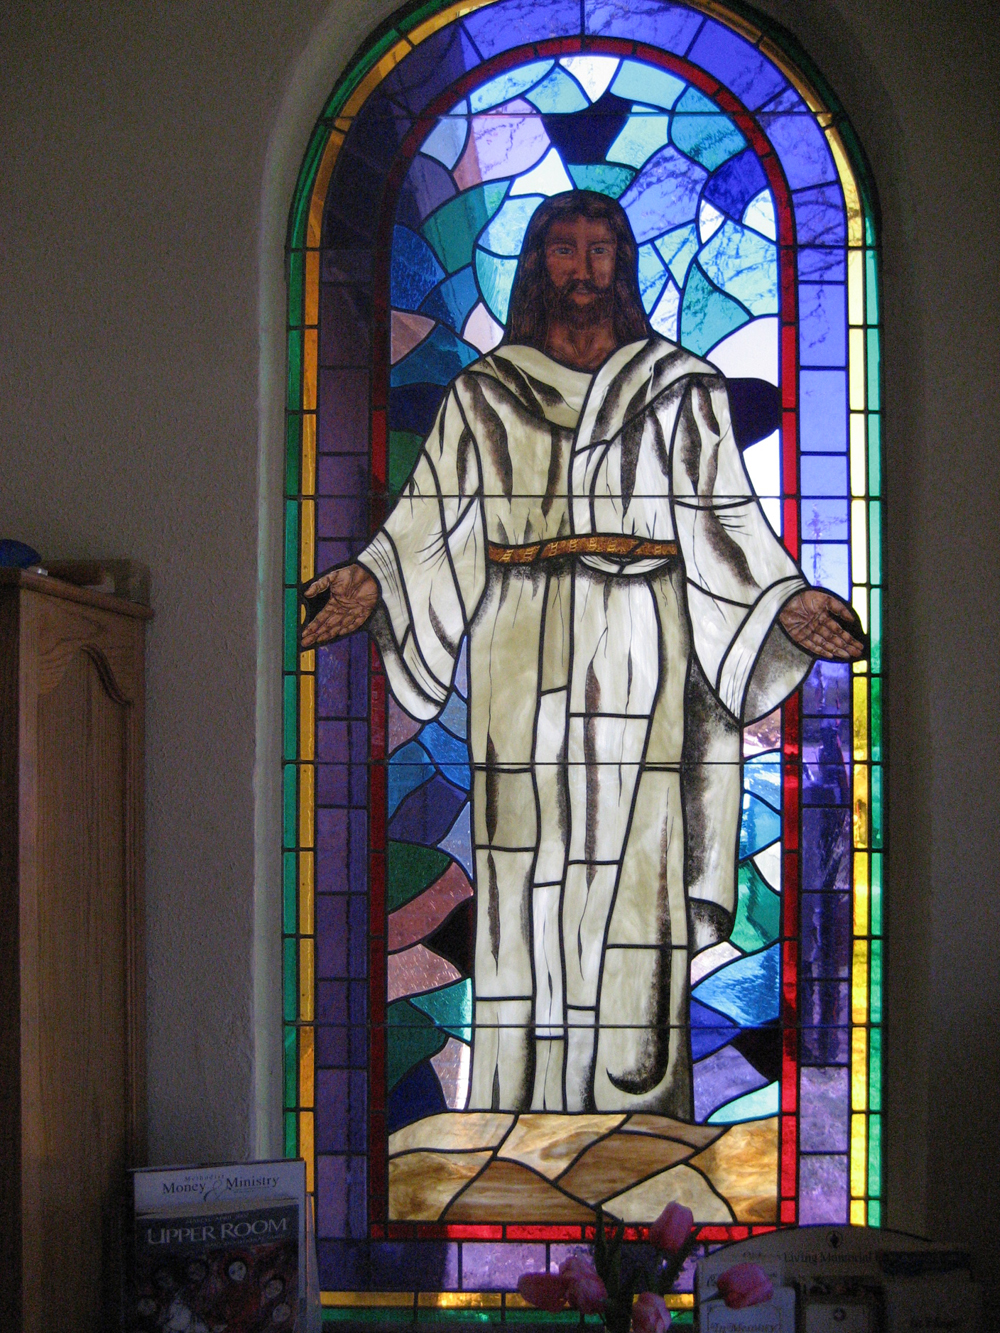 Stained Glass Window Of Jesus Christ At The First United Methodist Church In Bronte, Texas